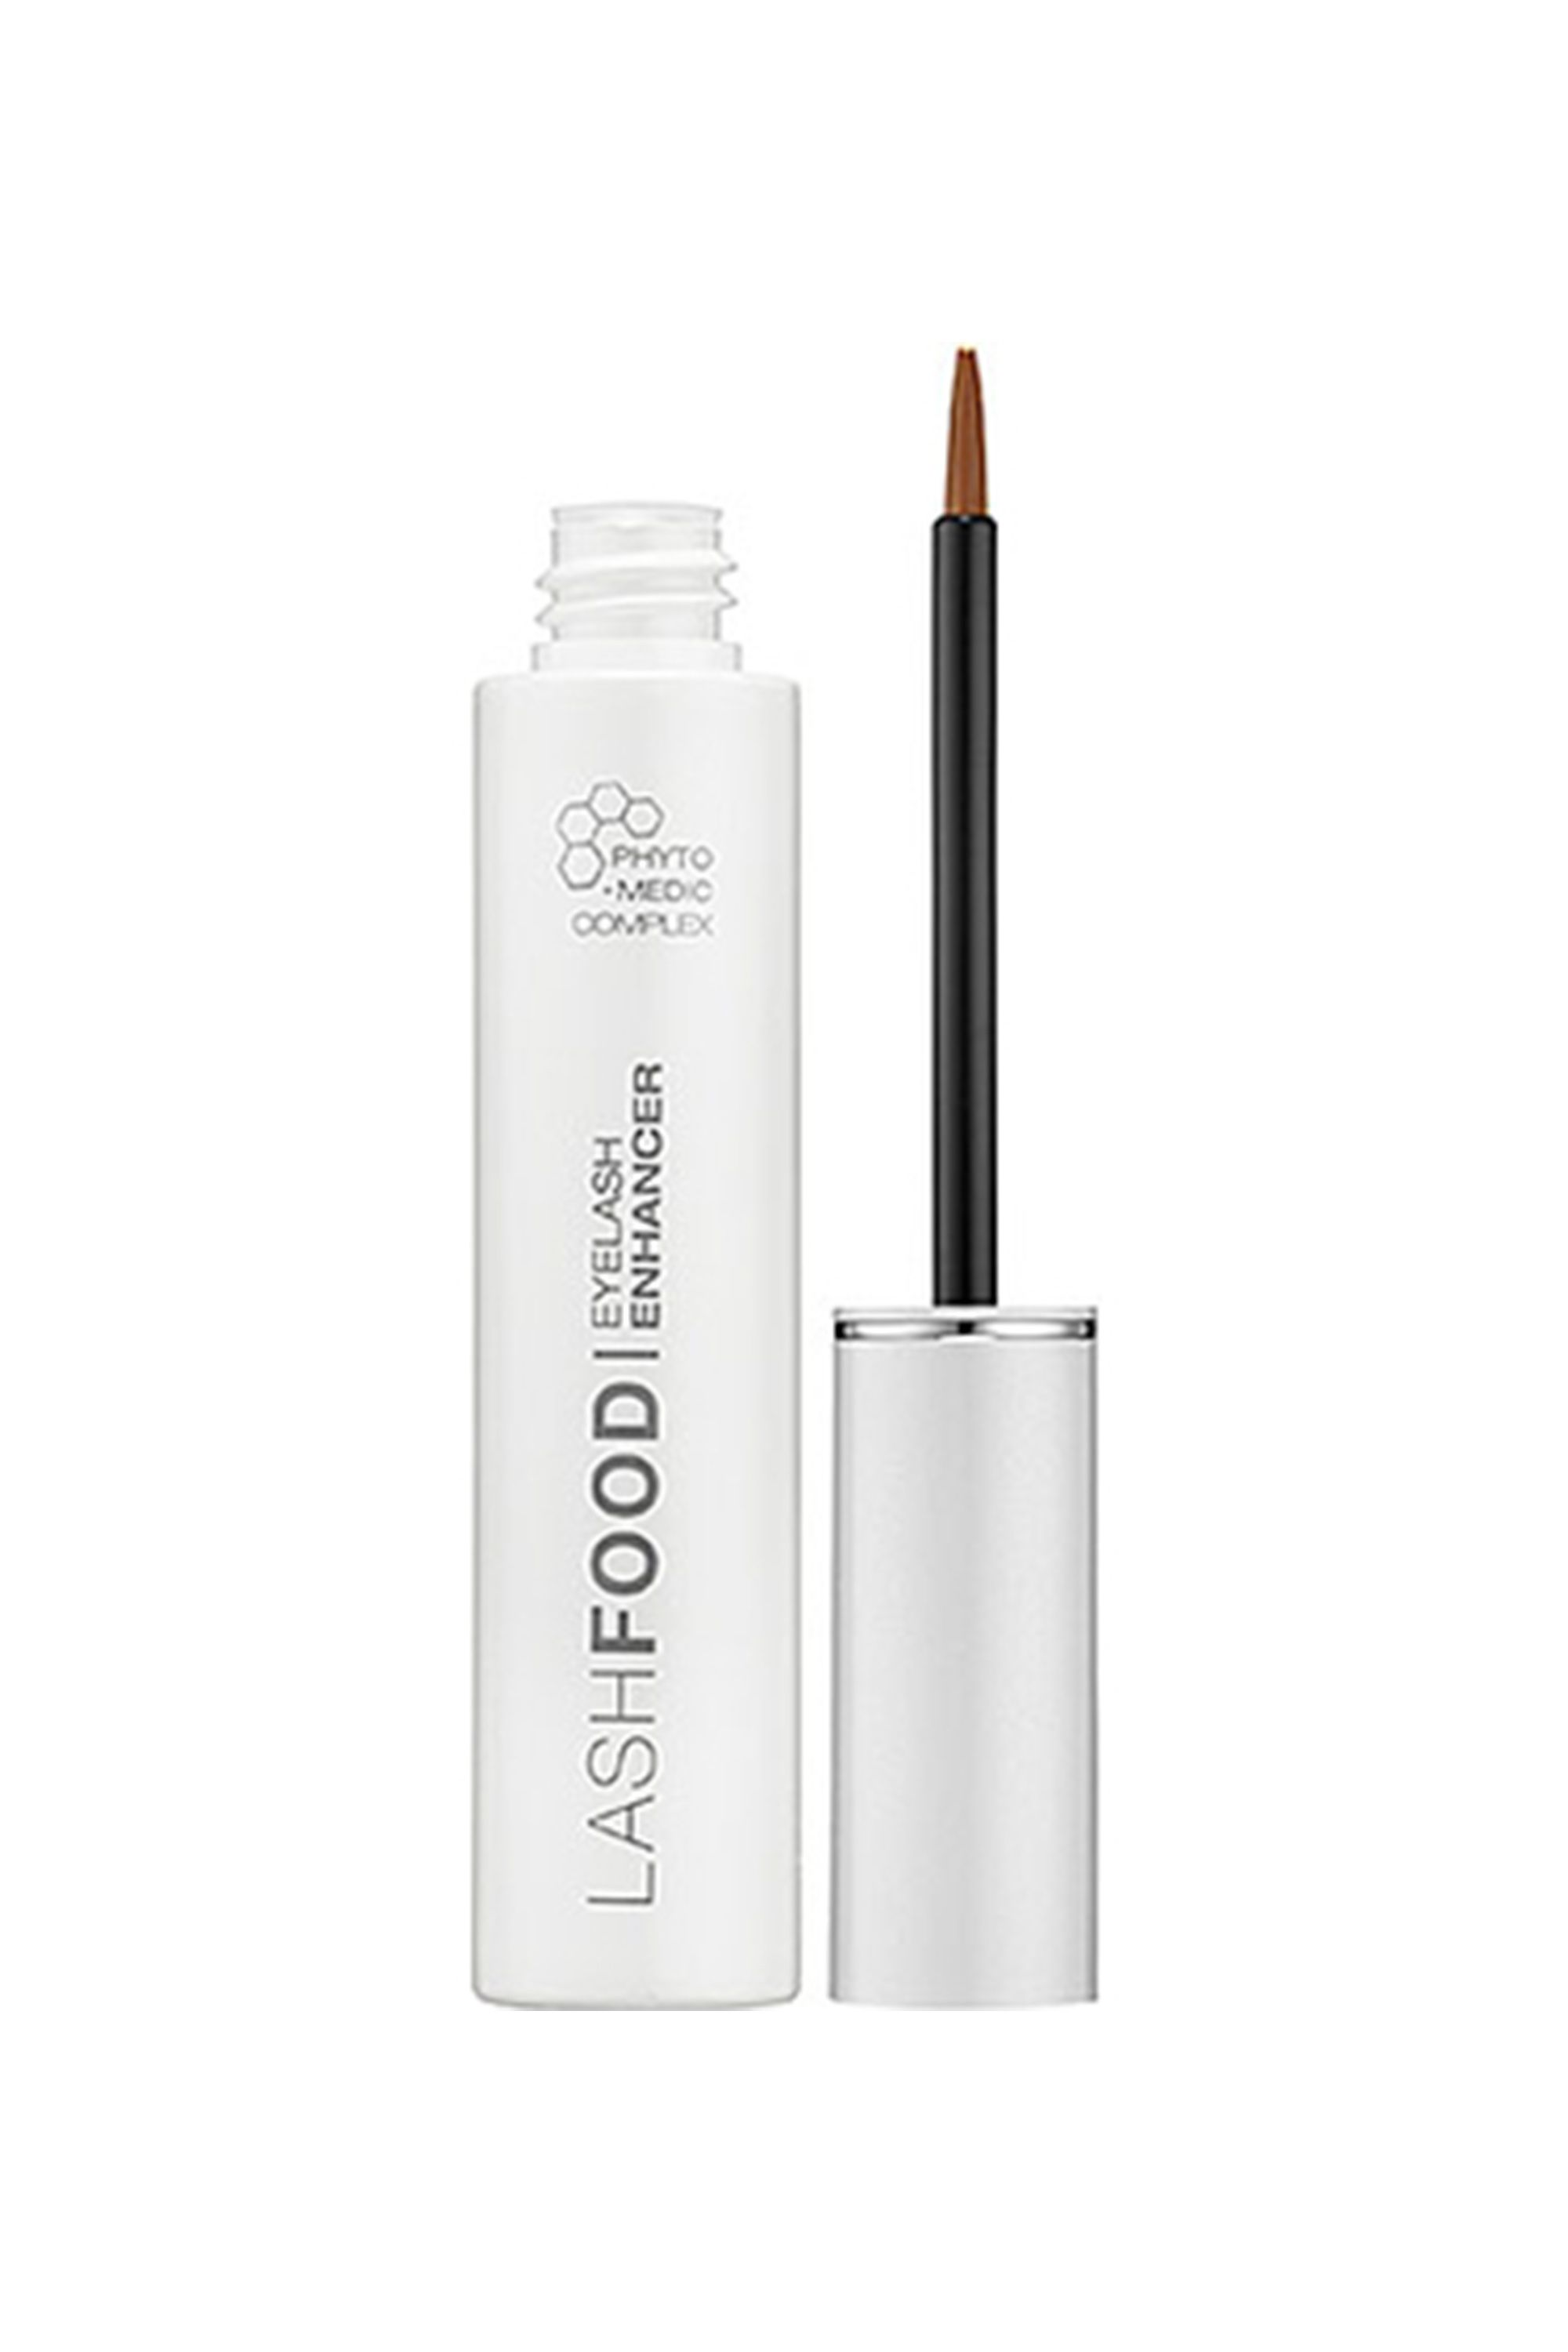 """<p><span>Mother nature comes through for your lashes with this herbal remedy, which uses an organic blend of extracts to stimulate lash follicles.</span></p>    <p><em data-redactor-tag=""""em"""" data-verified=""""redactor"""">$78, </em><a href=""""http://www.sephora.com/phyto-medic-eyelash-enhancer-P384467?skuId=1585934&icid2=products%20grid:p384467"""" target=""""_blank"""" data-tracking-id=""""recirc-text-link""""><em data-redactor-tag=""""em"""" data-verified=""""redactor"""">sephora.com</em></a></p>"""